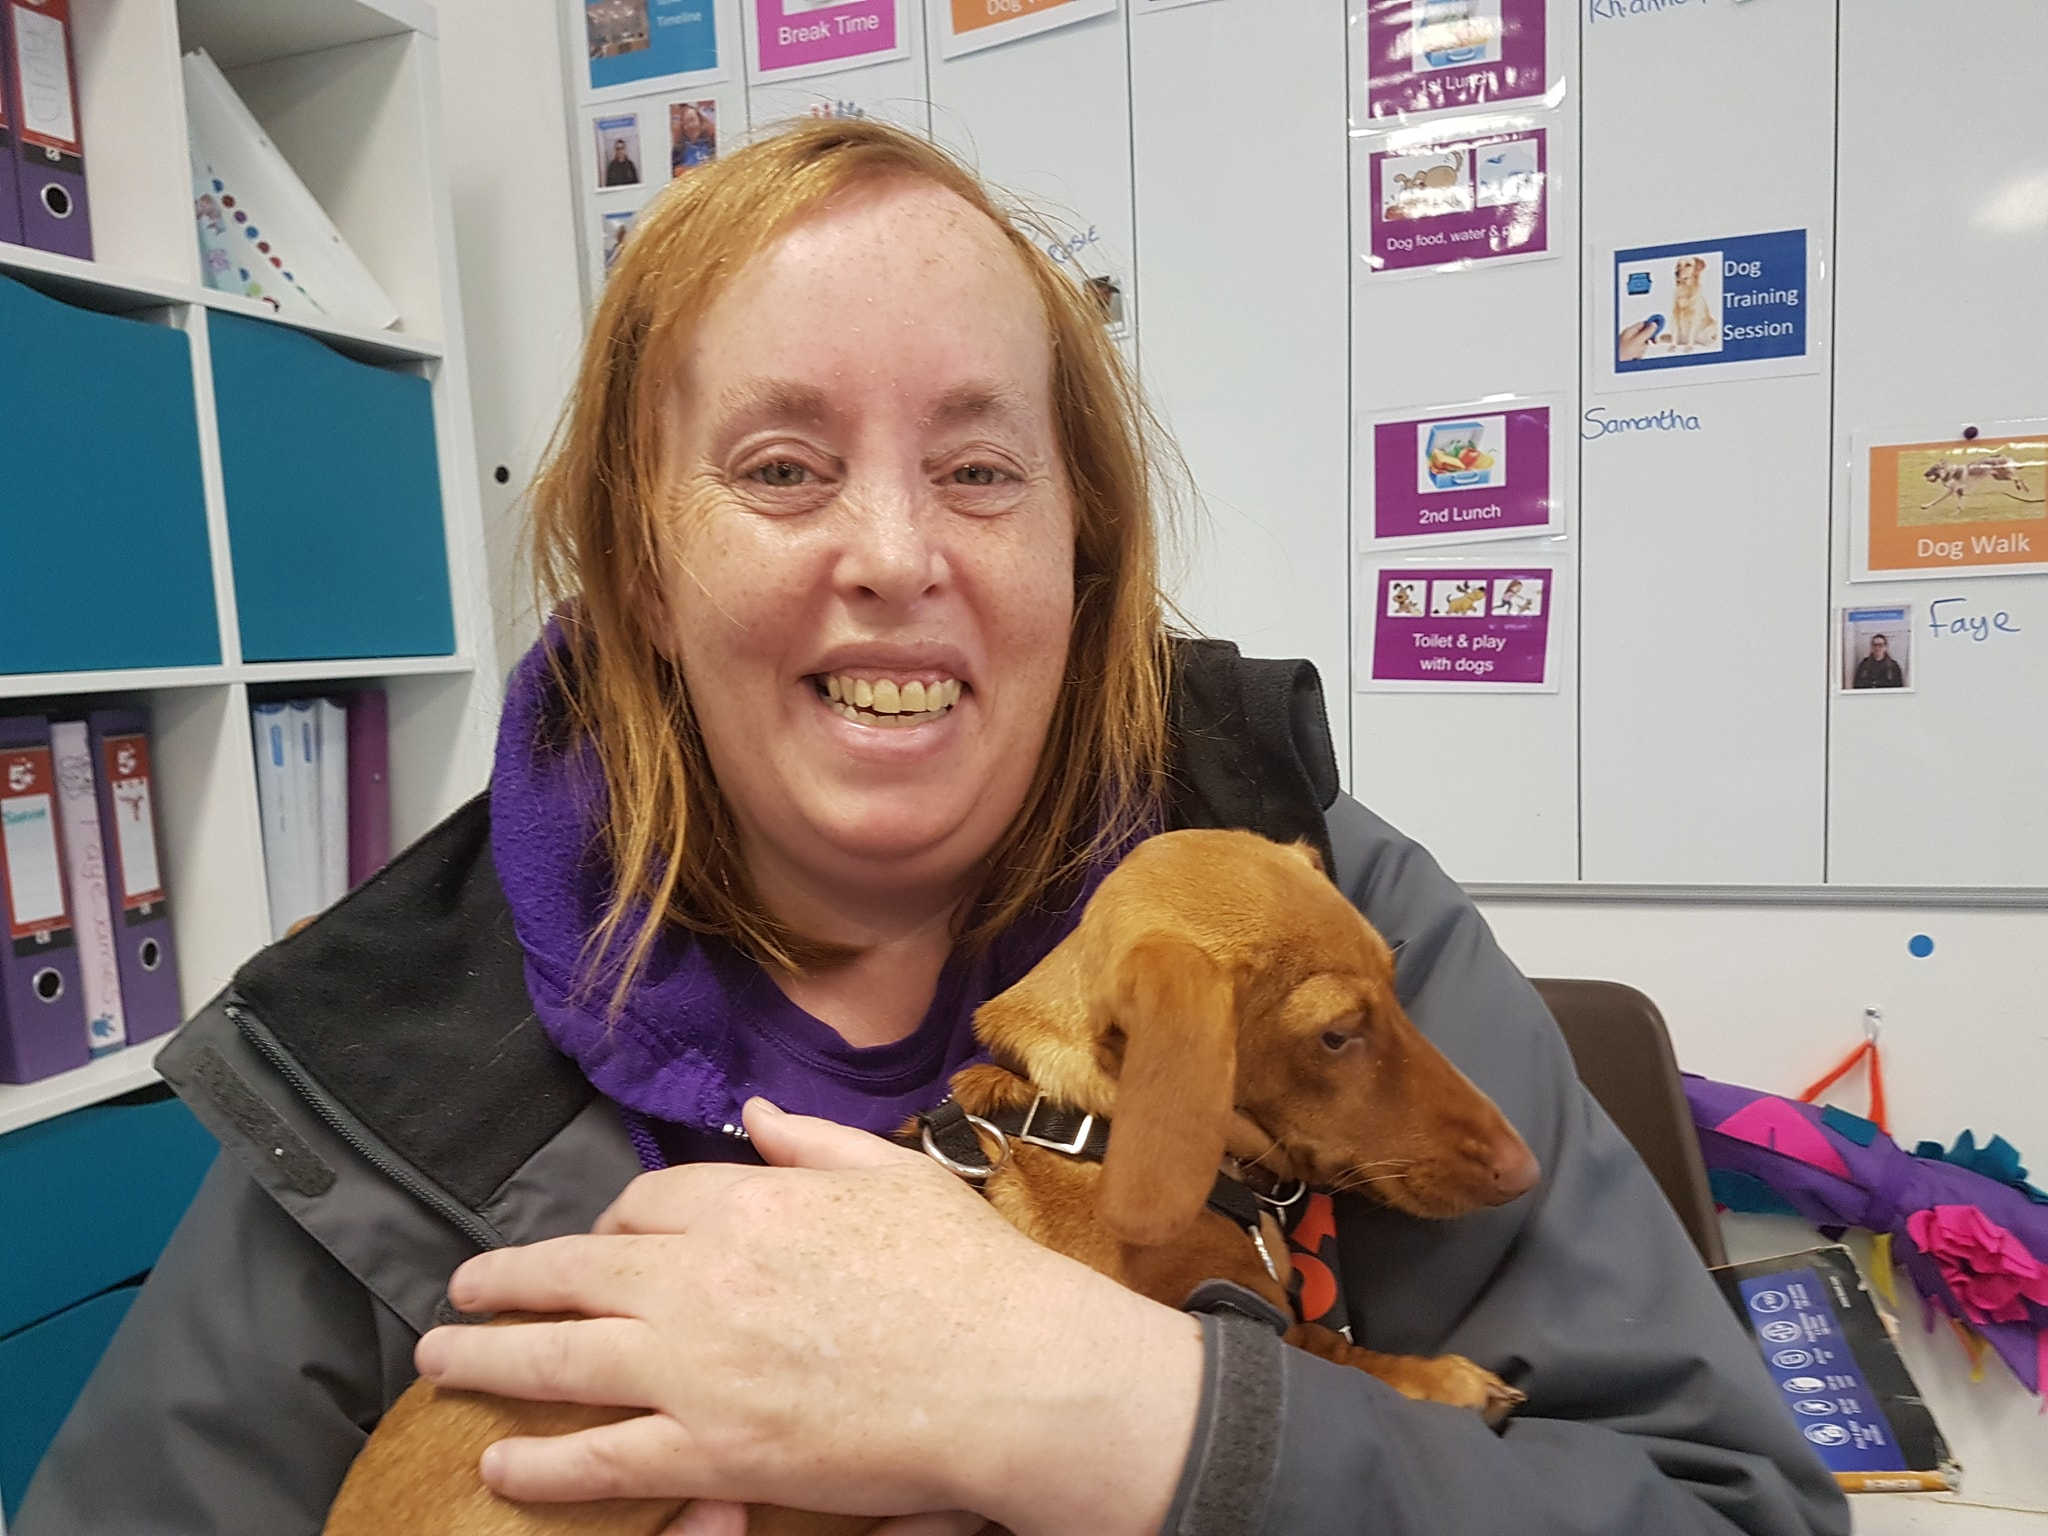 Volunteering with Dogs - SPPOT, Haverfordwest